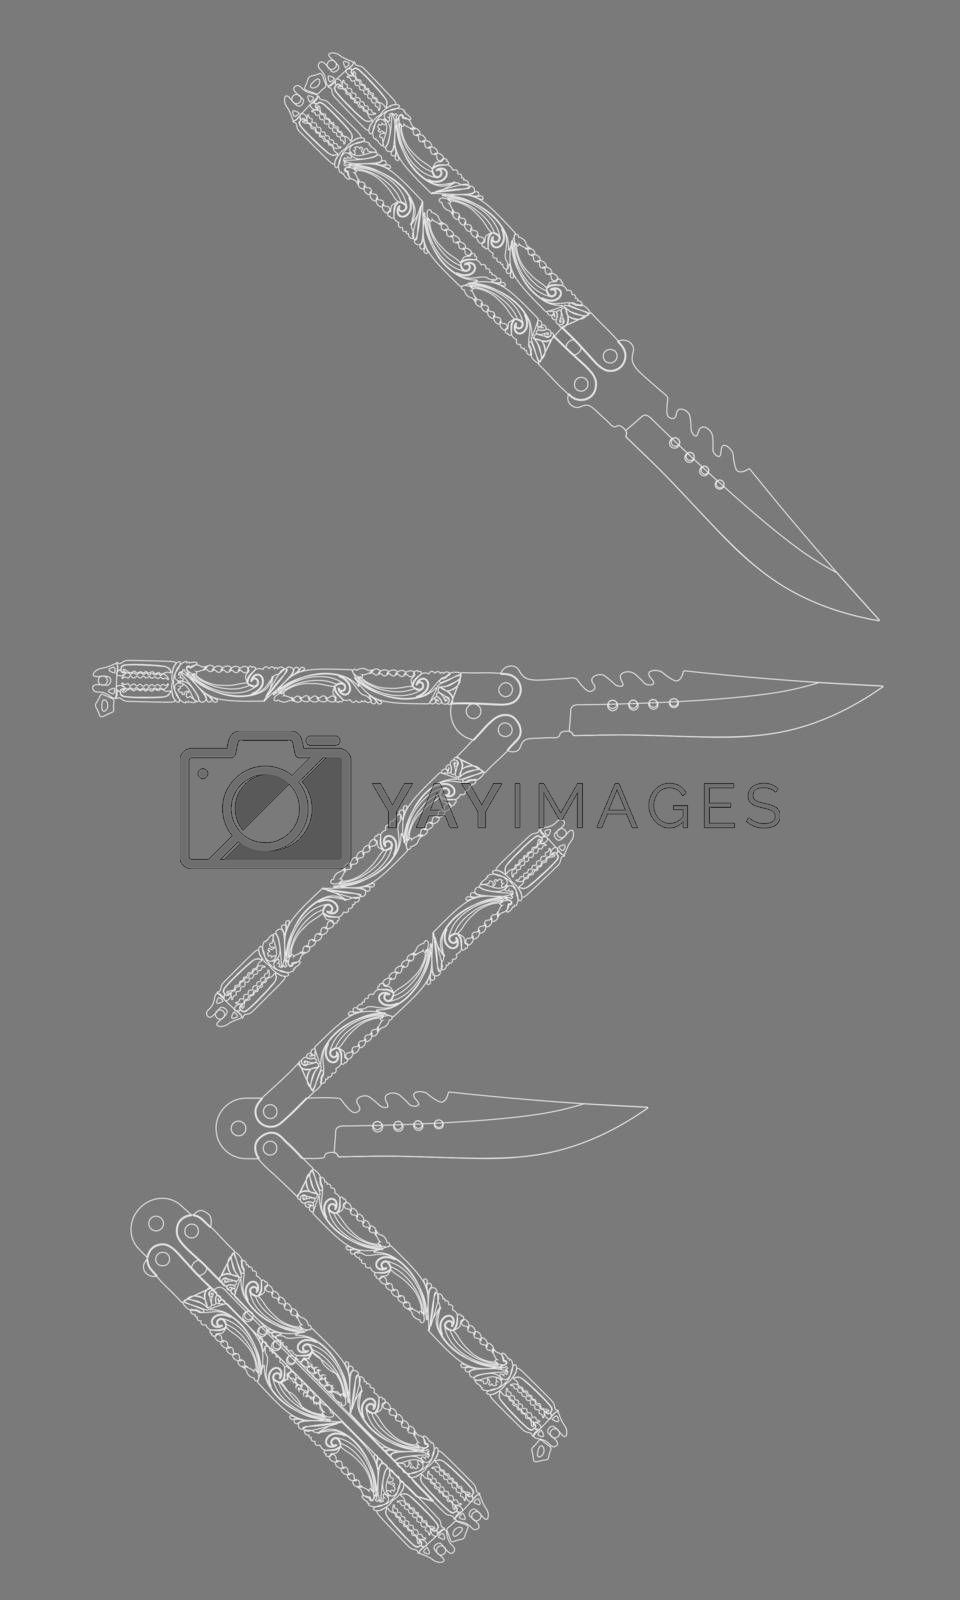 White contour sketch illustration of four beautiful butterfly knives or balisongs on grey background